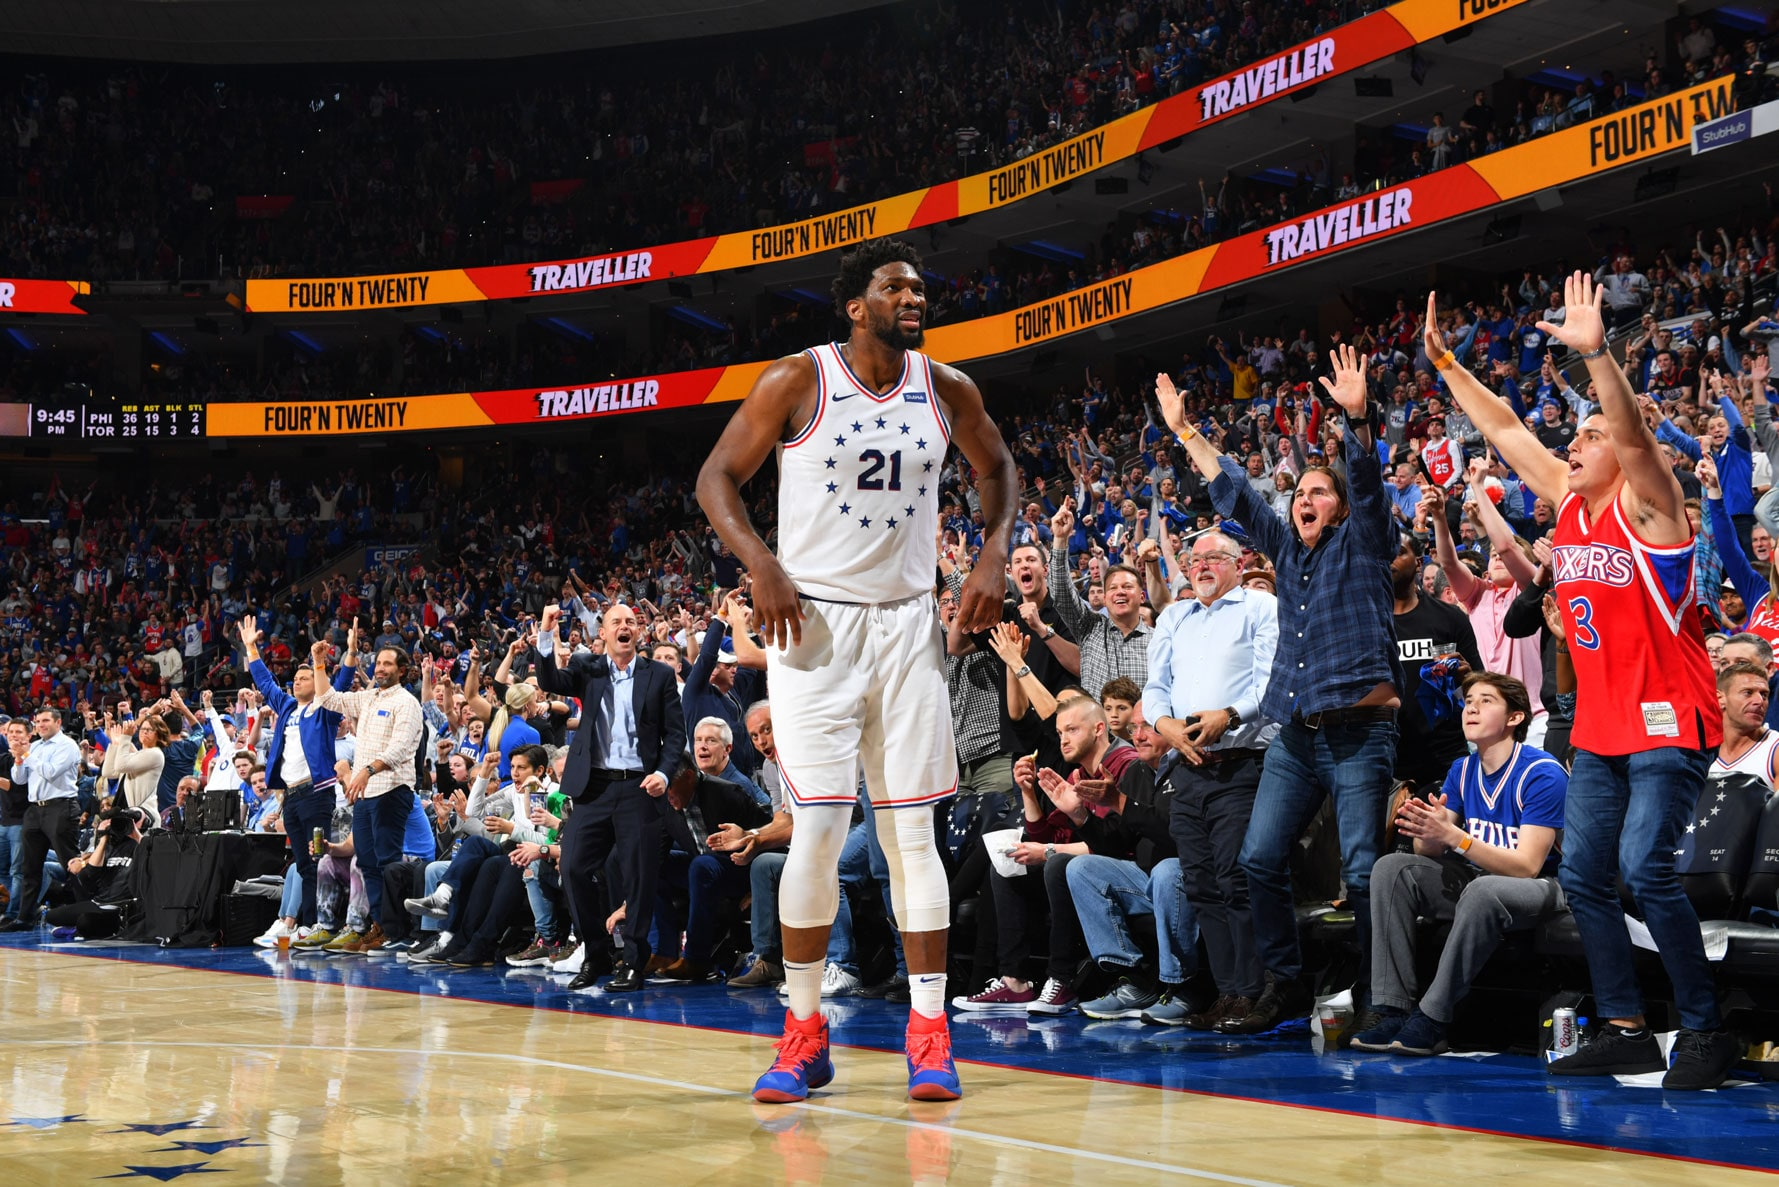 Joel Embiid #21 of the Philadelphia 76ers reacts during a game against the Toronto Raptors during Game Six of the Eastern Conference Semifinals on May 9, 2019 at the Wells Fargo Center in Philadelphia, Pennsylvania